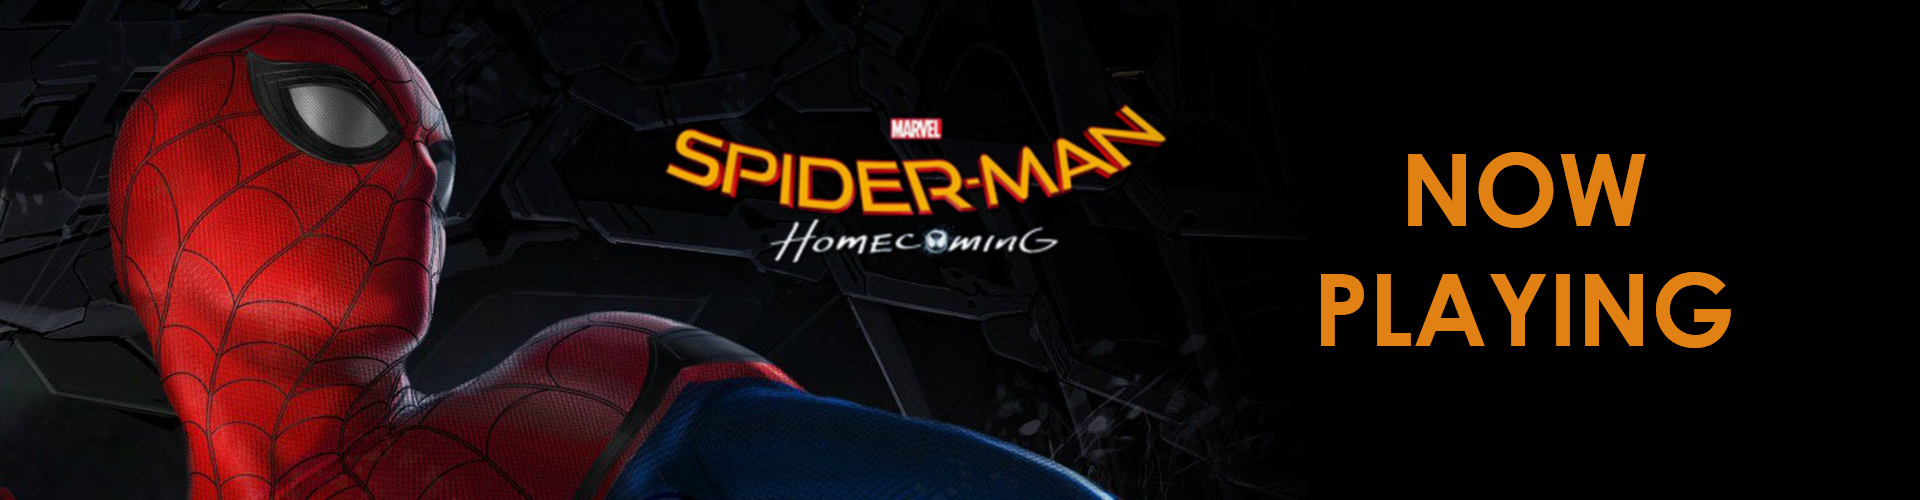 spiderman-now-playing